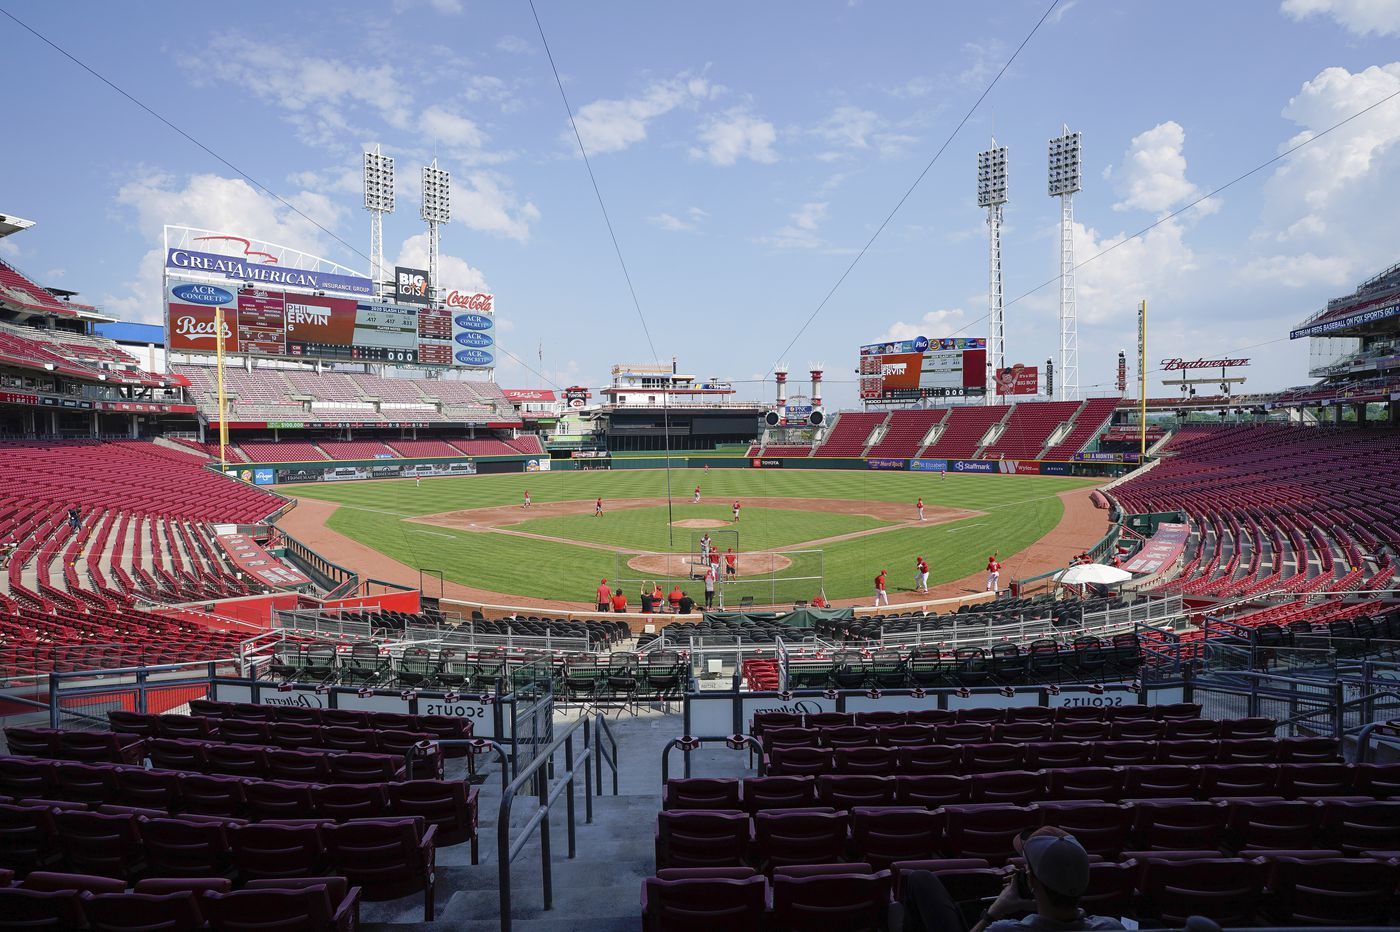 Cincinnati Reds player tests positive for COVID-19, 2 games with Pirates postponed